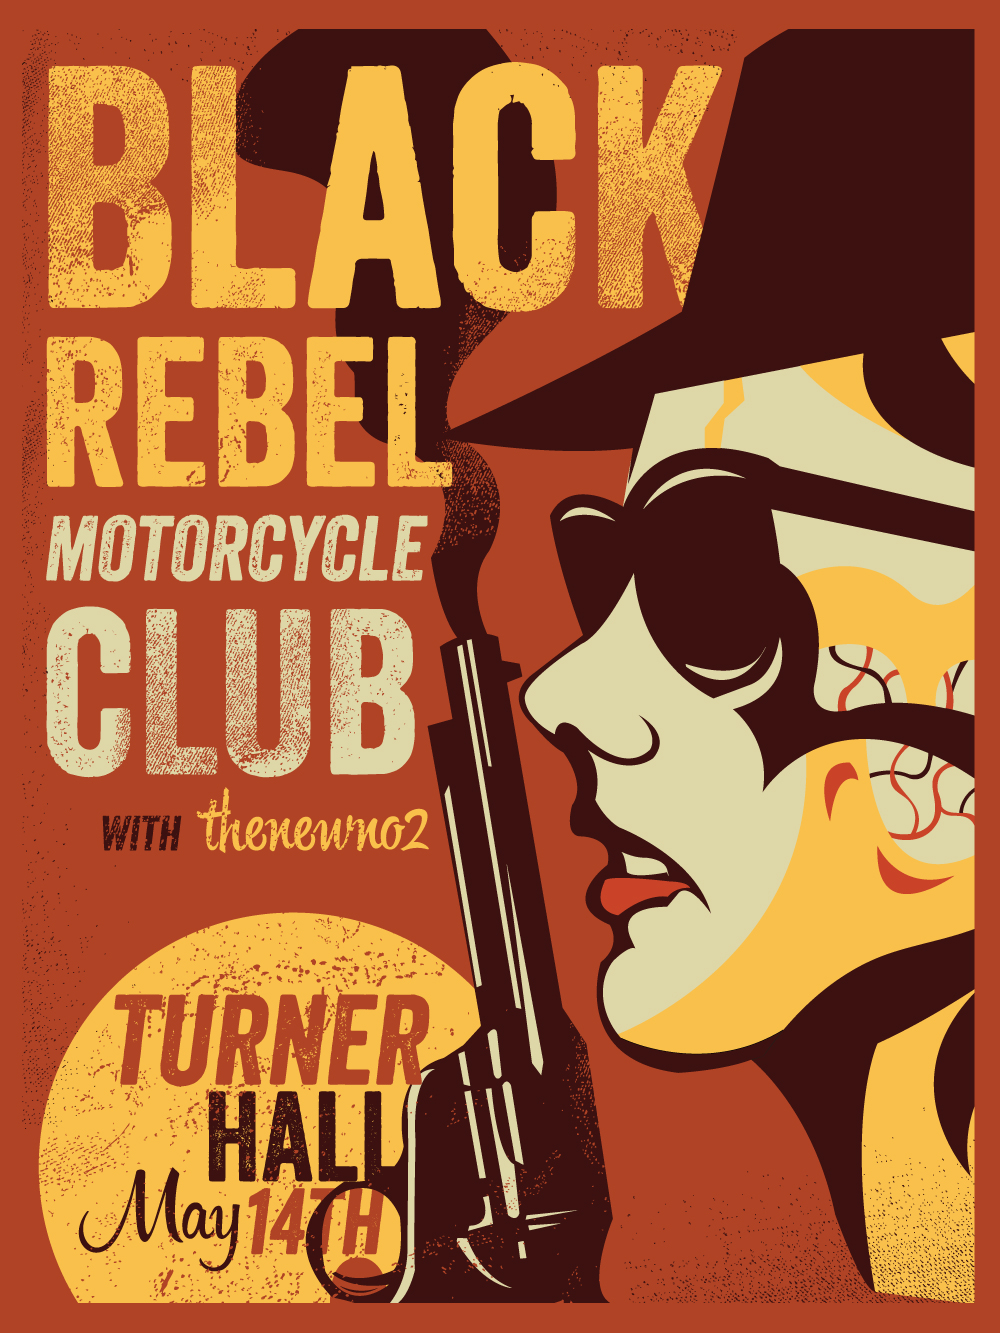 blackrebelmotorcycle